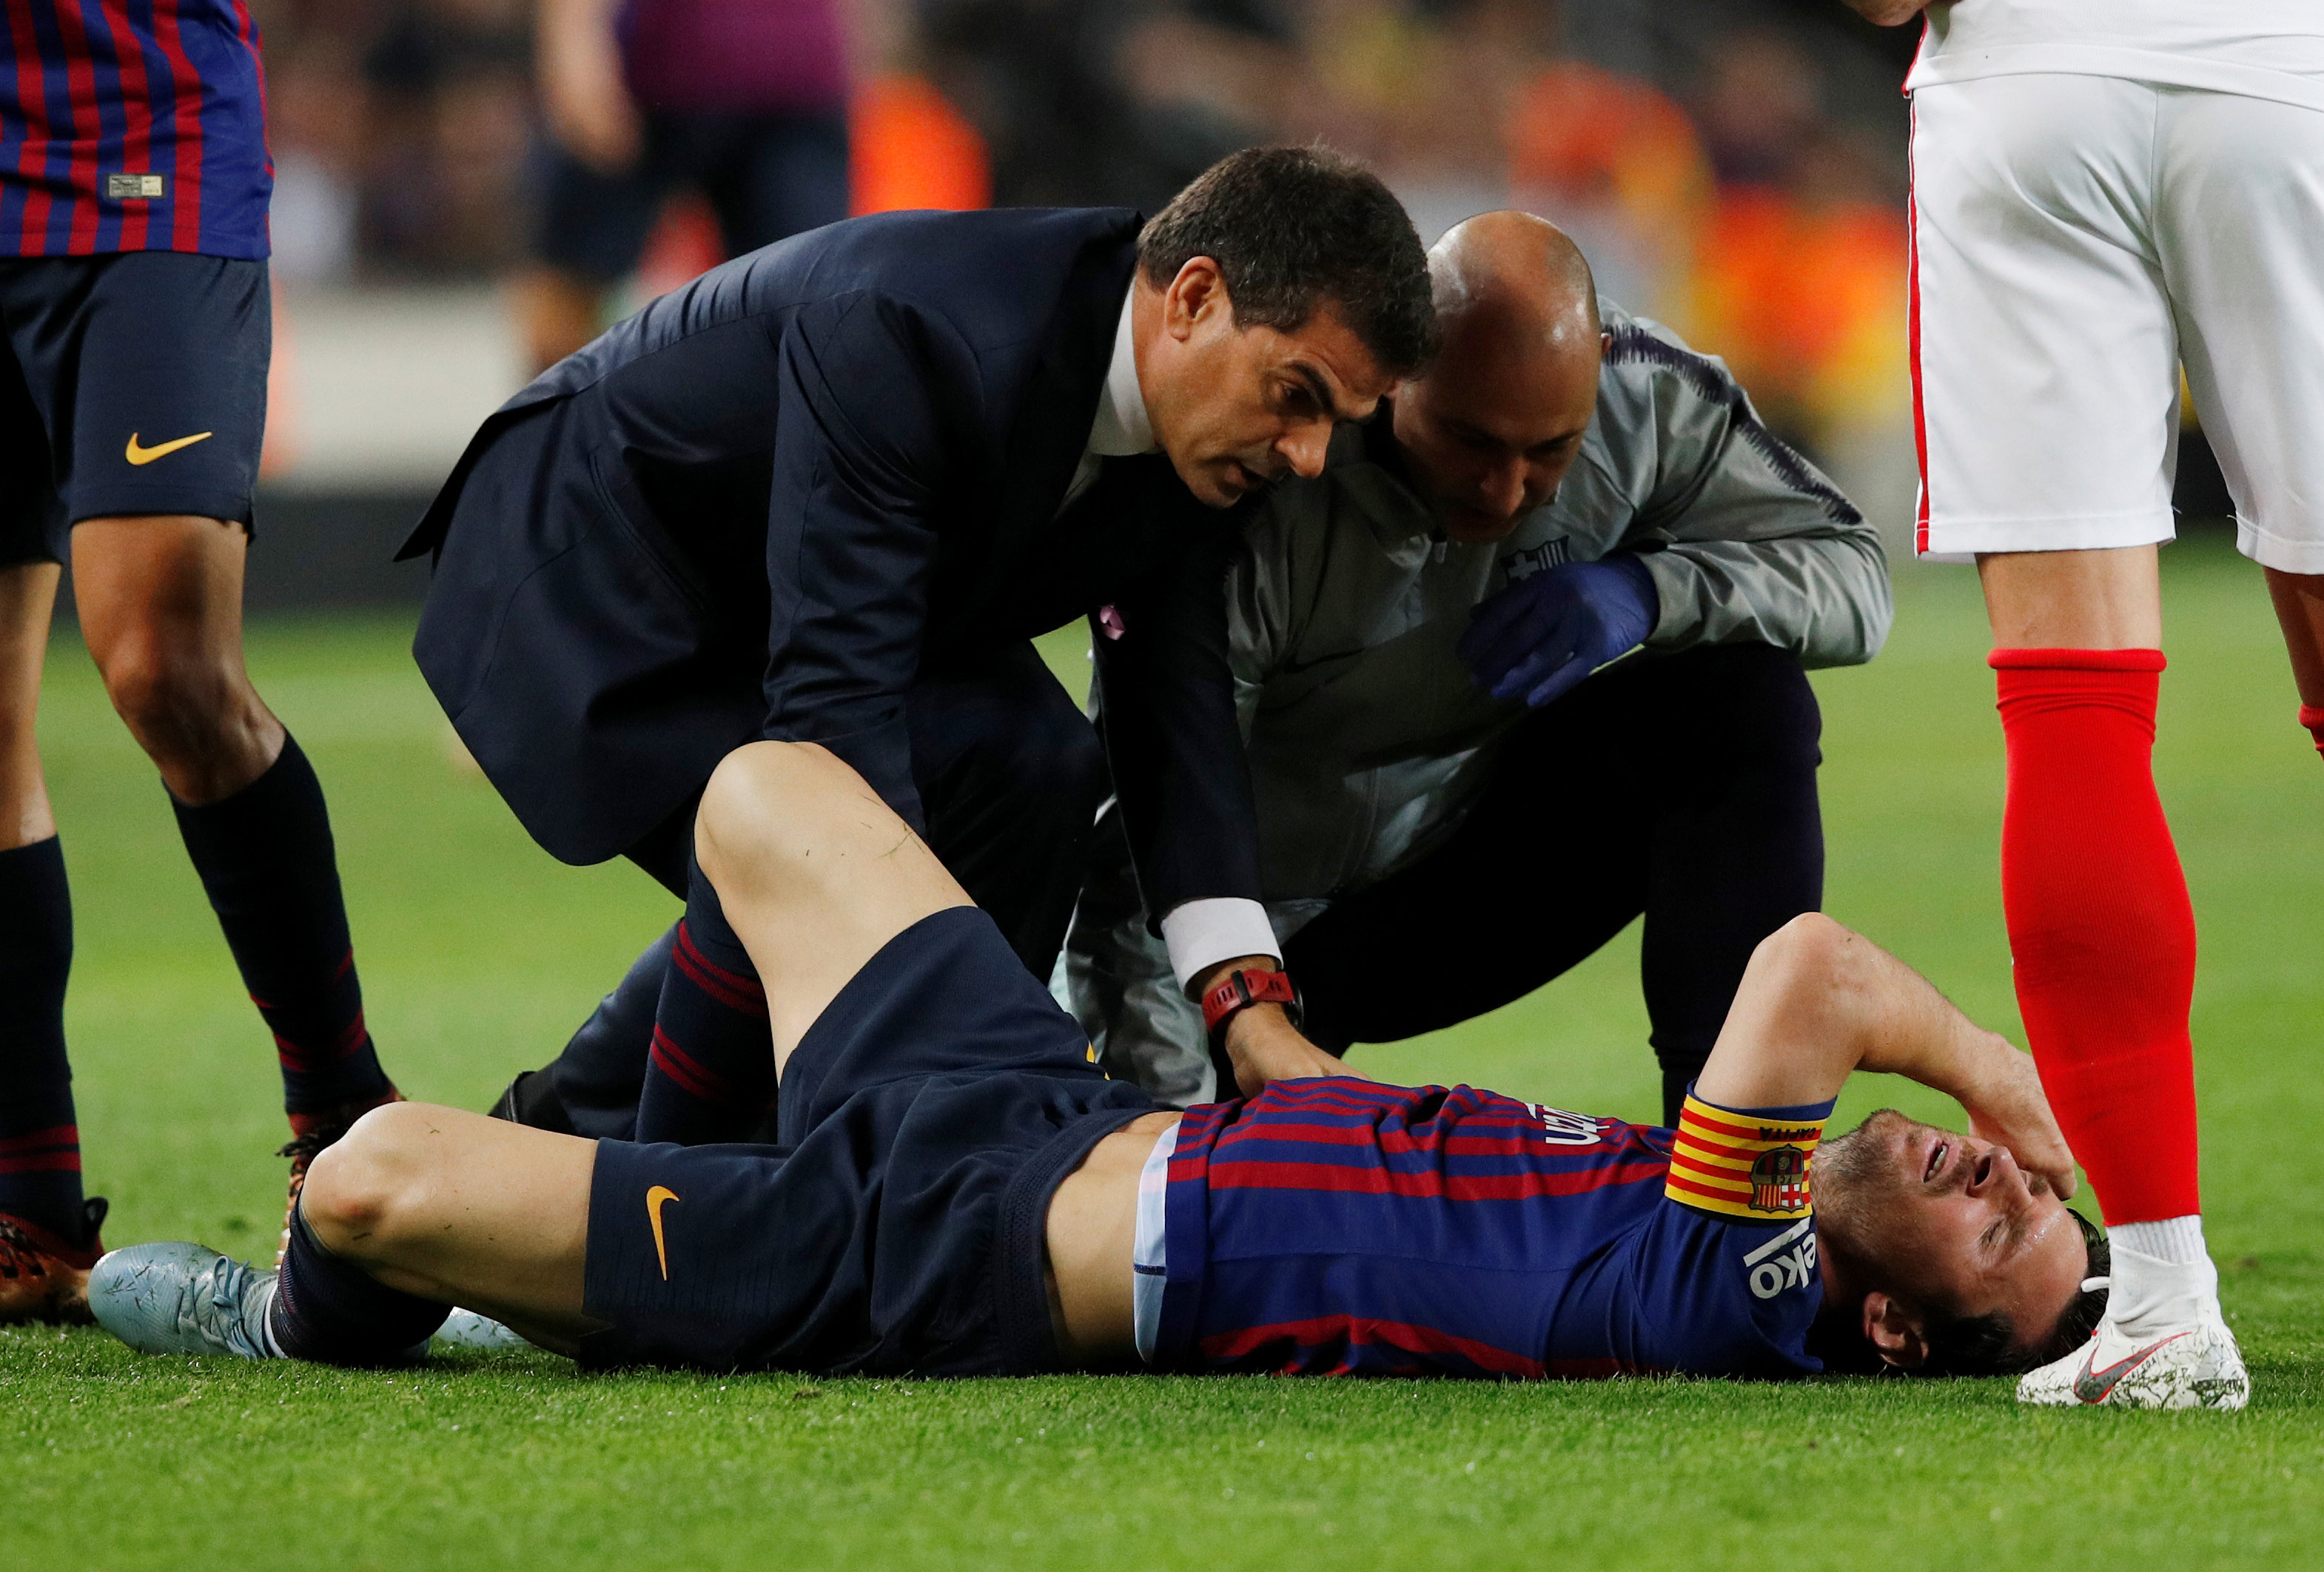 Football: Messi ruled out for three weeks with fractured arm